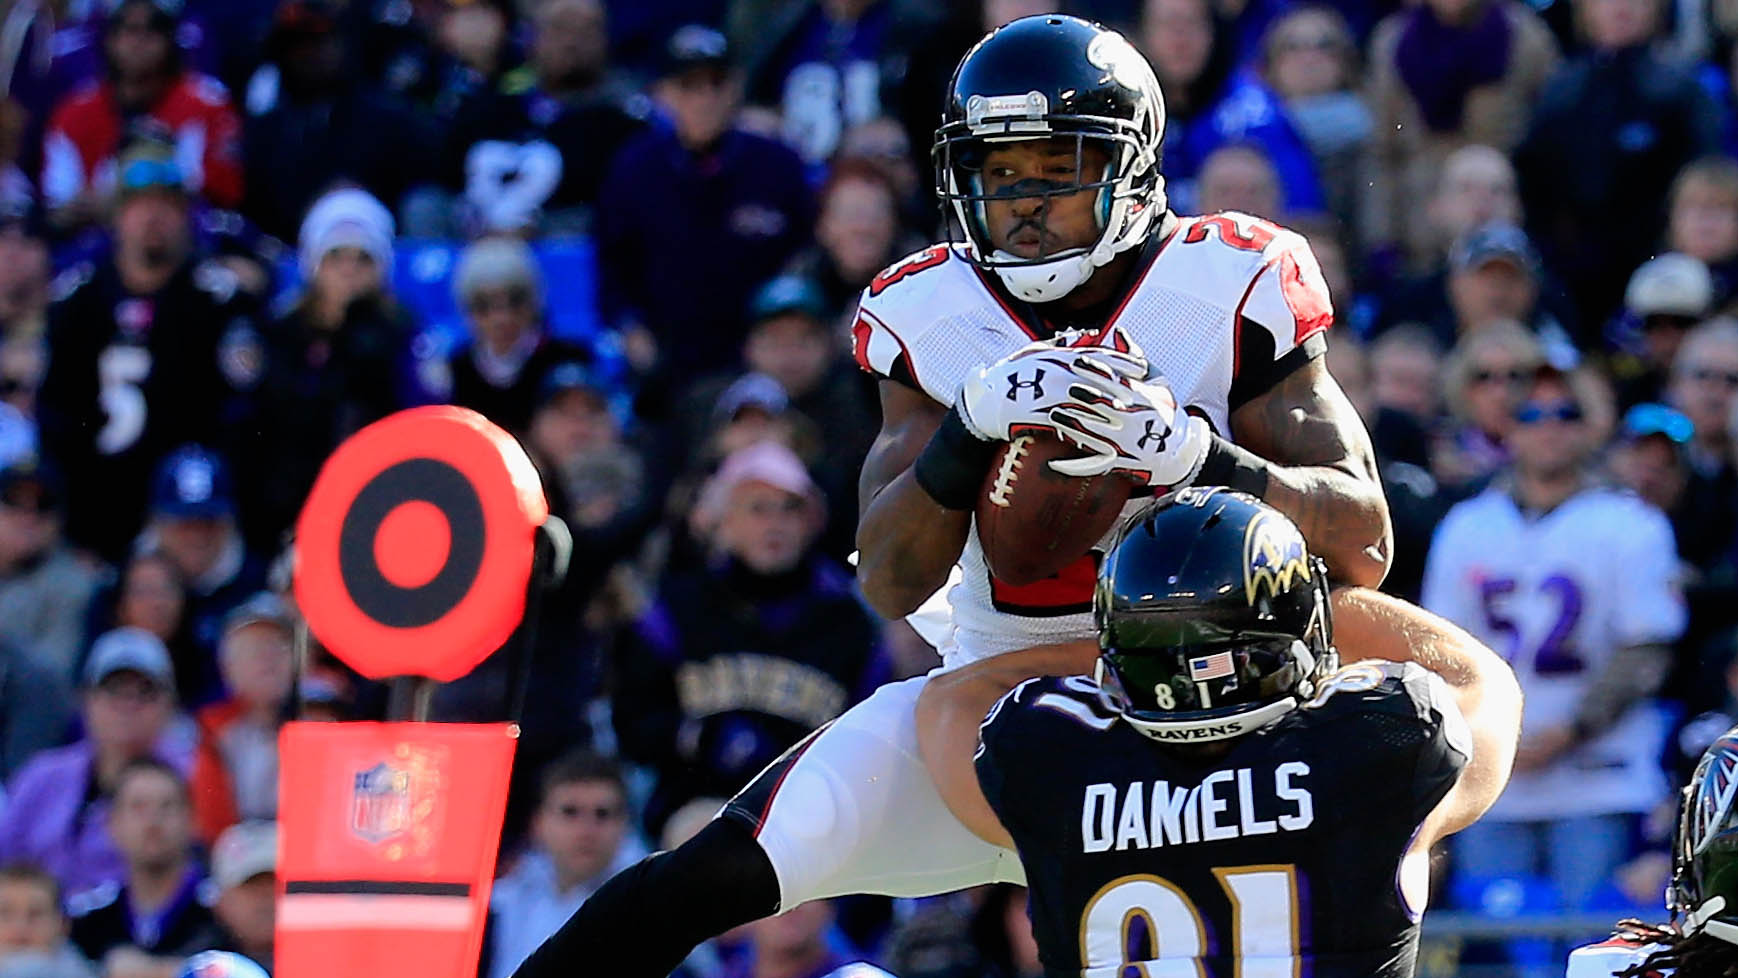 Atlanta Falcons CB Robert Alford needs wrist surgery placed on